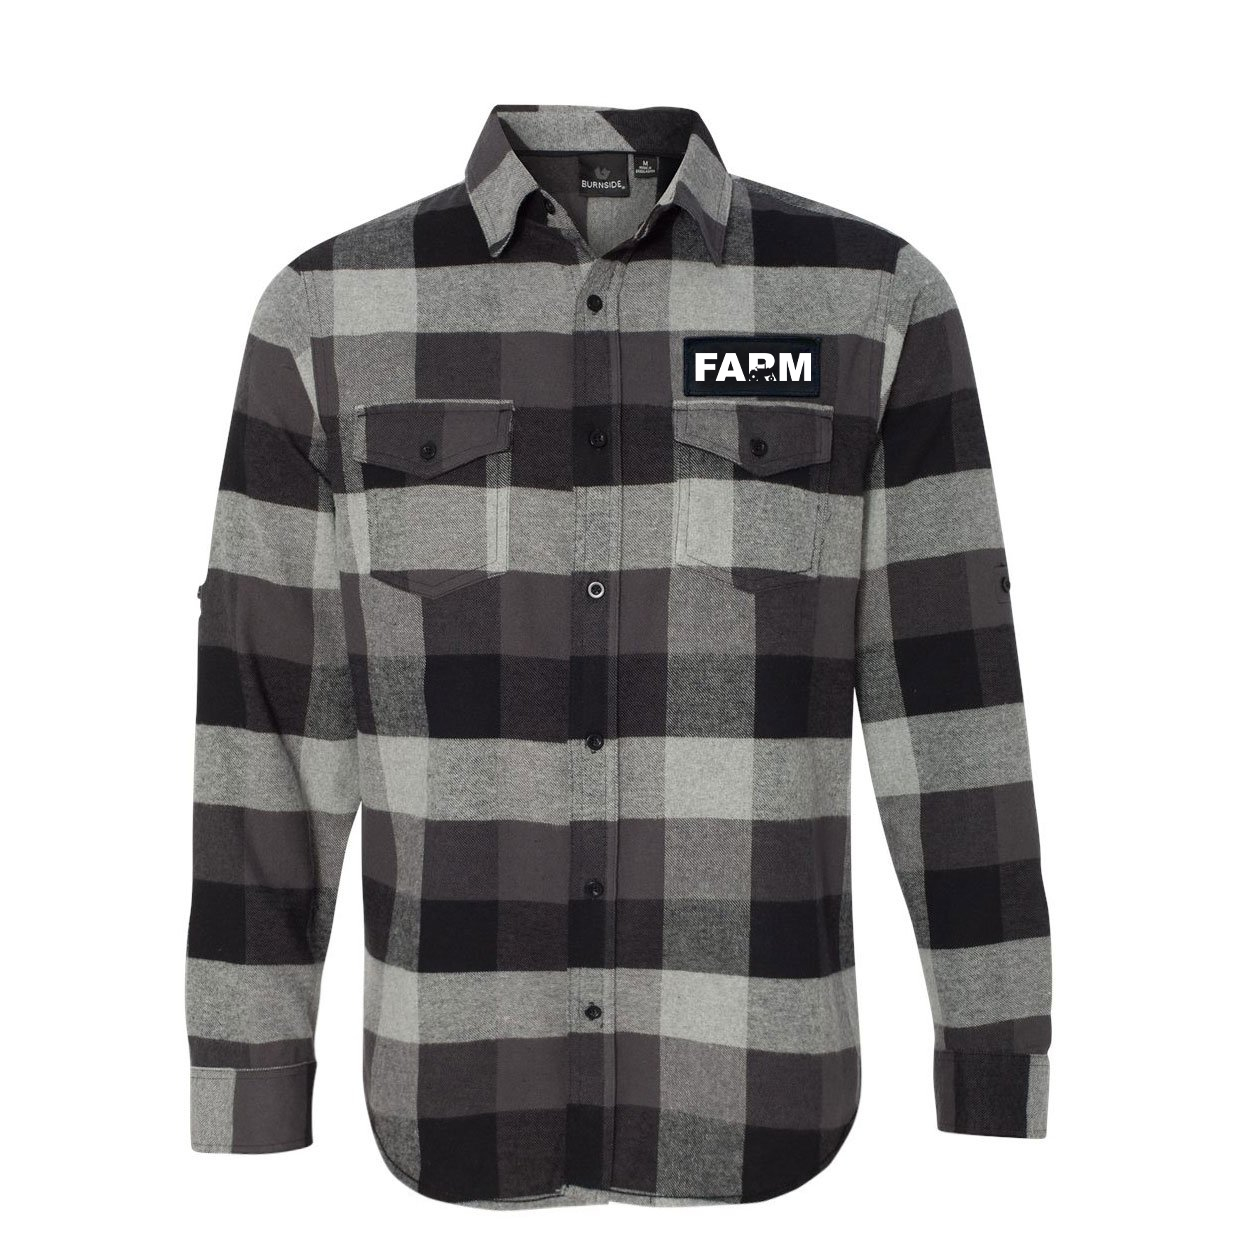 Farm Tractor Logo Classic Unisex Long Sleeve Woven Patch Flannel Shirt Black/Gray (White Logo)